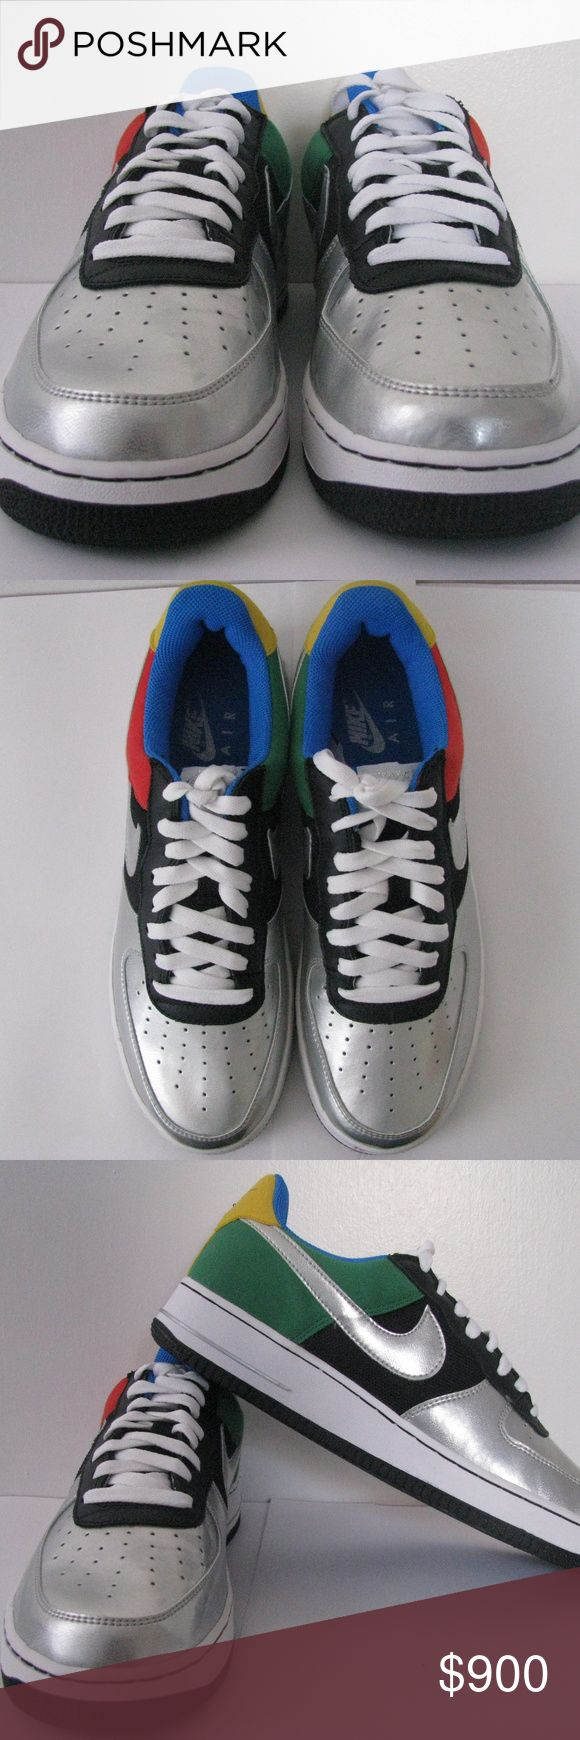 """Nike Air Force 1 Olympic Low This """"Olympic"""" colorway of the Air Force 1 Low from 2004 features a multi-colored upper inspired by the various colors of the Olympic Rings. Rare. Manufacturer Sku:307334 002 Nickname:Olympic Gender:Mens Colorway:BLACK/METALLIC SILVER - CHILE Materials:Leather, Nubuck, Synthetics Nike Shoes Sneakers"""